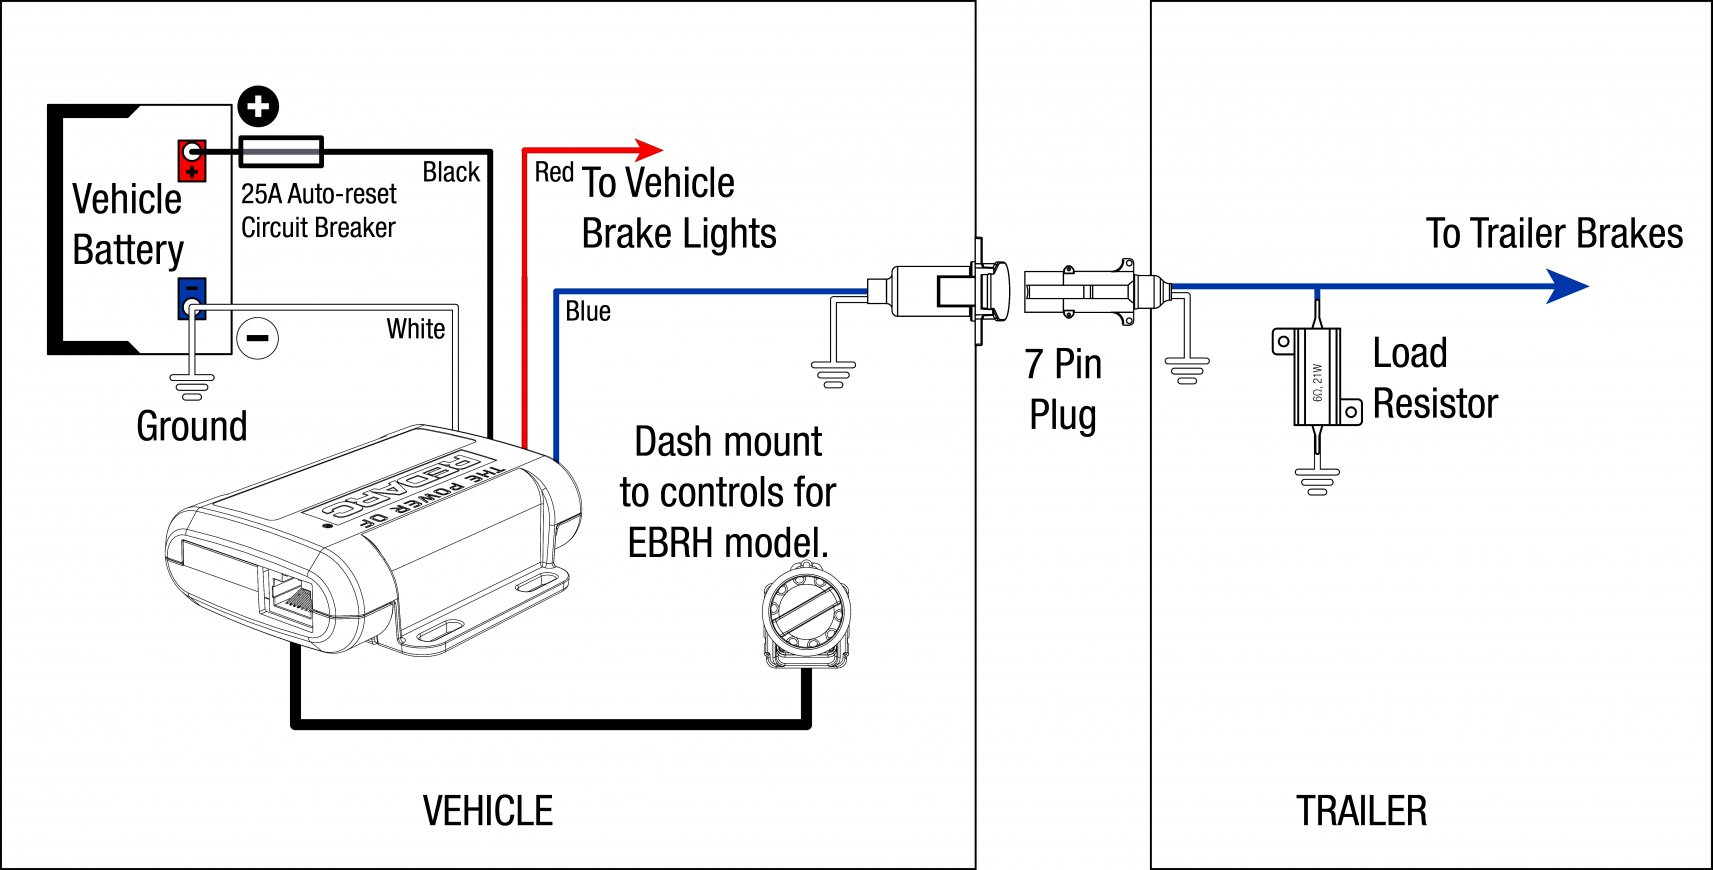 Wiring Diagram For Electric Brake Controller Manual Guide